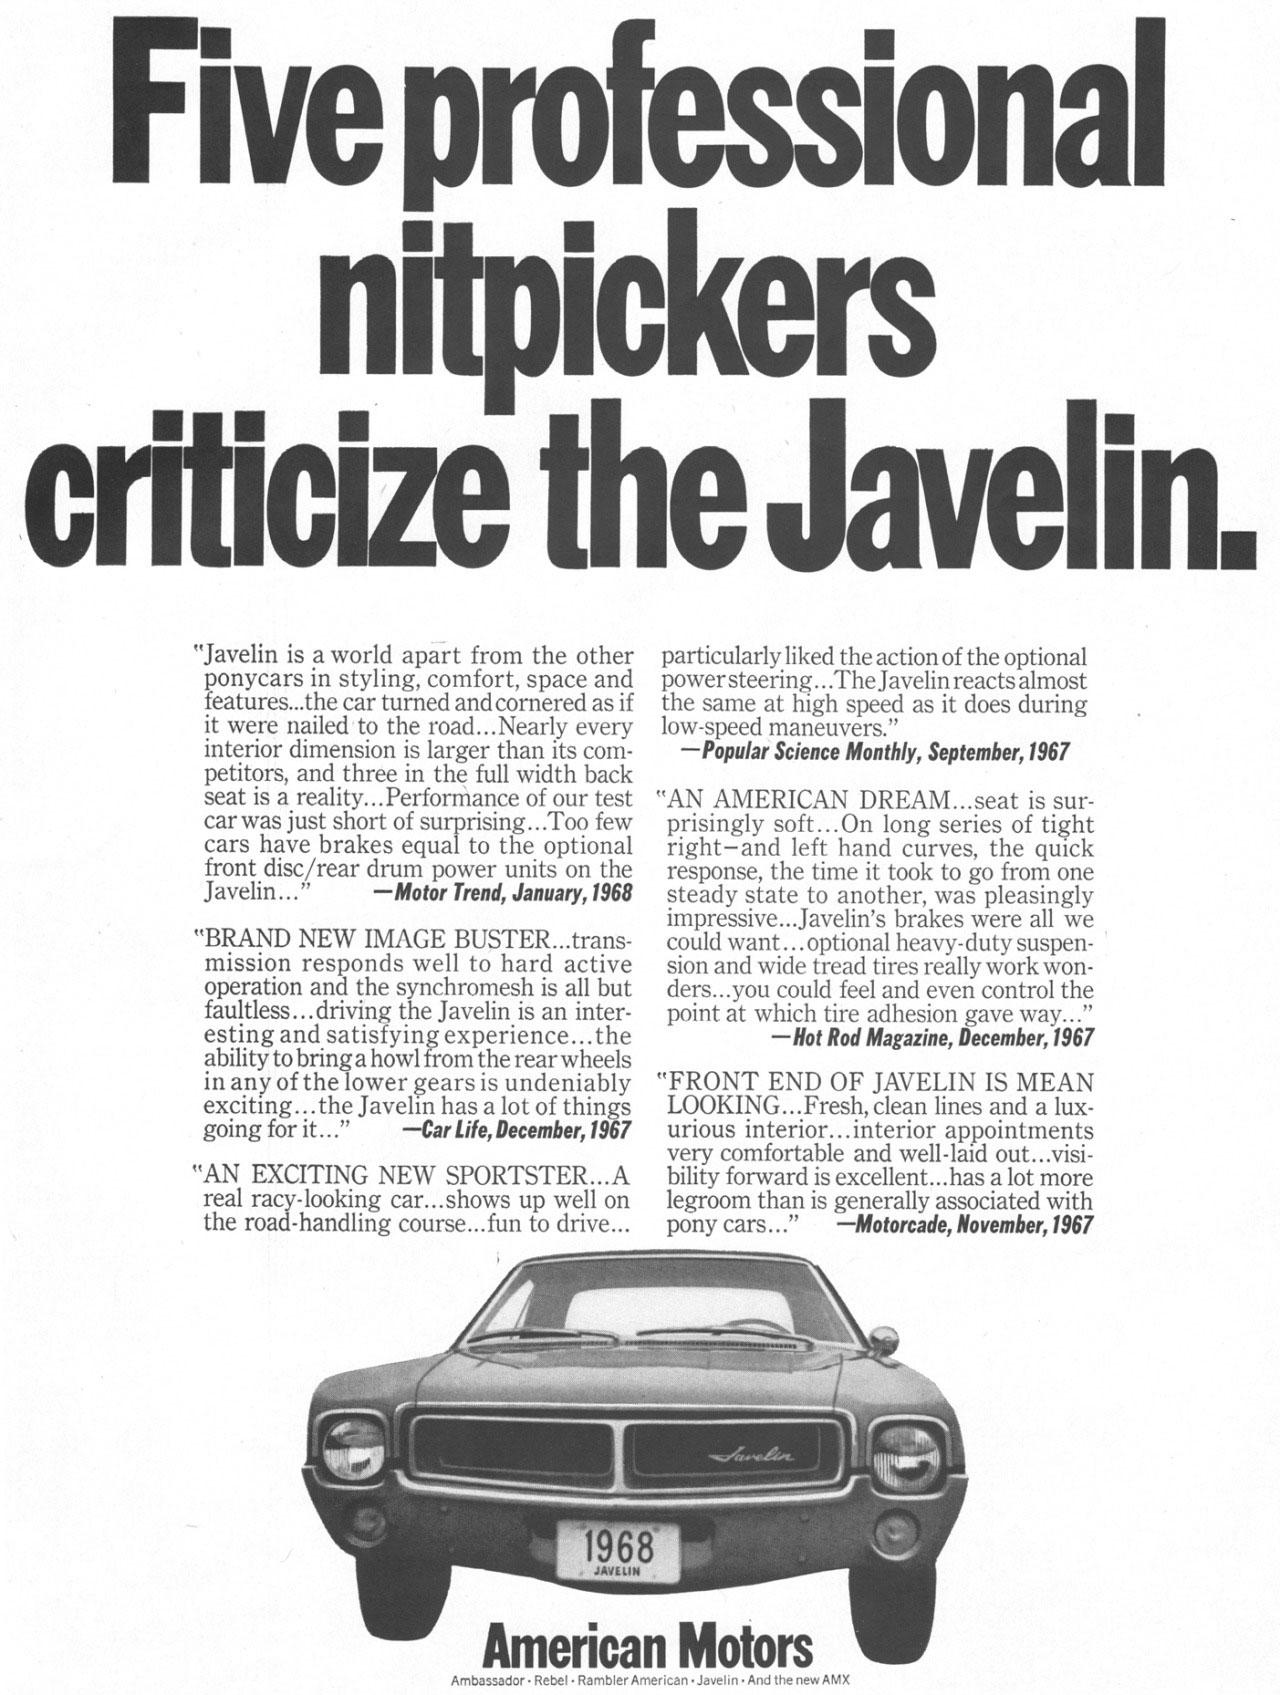 Five professional nitpickers criticize the Javelin.  ''Javelin is a world apart from the other ponycars in styling, comfort, space and features...the car turned andcornered as if it were nailed to the road...Nearly every interior dimension is larger than its com-petitors, and three in the full width back seat is a reality...Performance of our test car was just short of surprising...Too few cars have brakes equal to the optional front disc/rear drum power units on the Javelin...'' —Motor Trend, January,1968  ''BRAND NEW IMAGE BUSTER...trans-mission responds well to hard active operation and the synchromesh is all but faultless...driving the Javelin is an inter-esting and satisfying experience...the ability to bring a howl from the rear wheels in any of the lower gears is undeniably exciting...the Javelin has a lot of things going for it...'' —Car Life, December,1967 ''AN EXCITING NEW SPORTSTER...A real racy-looking car...shows up well on the road-handling course...fun to drive...  particularly liked the action of the optional power steering...The Javelin reacts almost the same at high speed as it does during low-speed maneuvers.'' —Popular Science Monthly, September,1967  ''AN AMERICAN DREAM...seat is sur-prisingly soft...On long series of tight right—and left hand curves, the quick response, the time it took to go from one steady state to another, was pleasingly impressive...Javelin's brakes were all we could want ...optional heavy-duty suspen-sion and wide tread tires really work won-ders...you could feel and even control the point at which tire adhesion gave way...'' —Hot Rod Magazine, December,1967 ''FRONT END OF JAVELIN IS MEAN LOOKING...Fresh, clean lines and a lux-urious interior...interior appointments very comfortable and well-laid out...visi-bility forward is excellent...has a lot more legroom than is generally associated with pony cars...'' —Motorcade, November,1967 American Motors